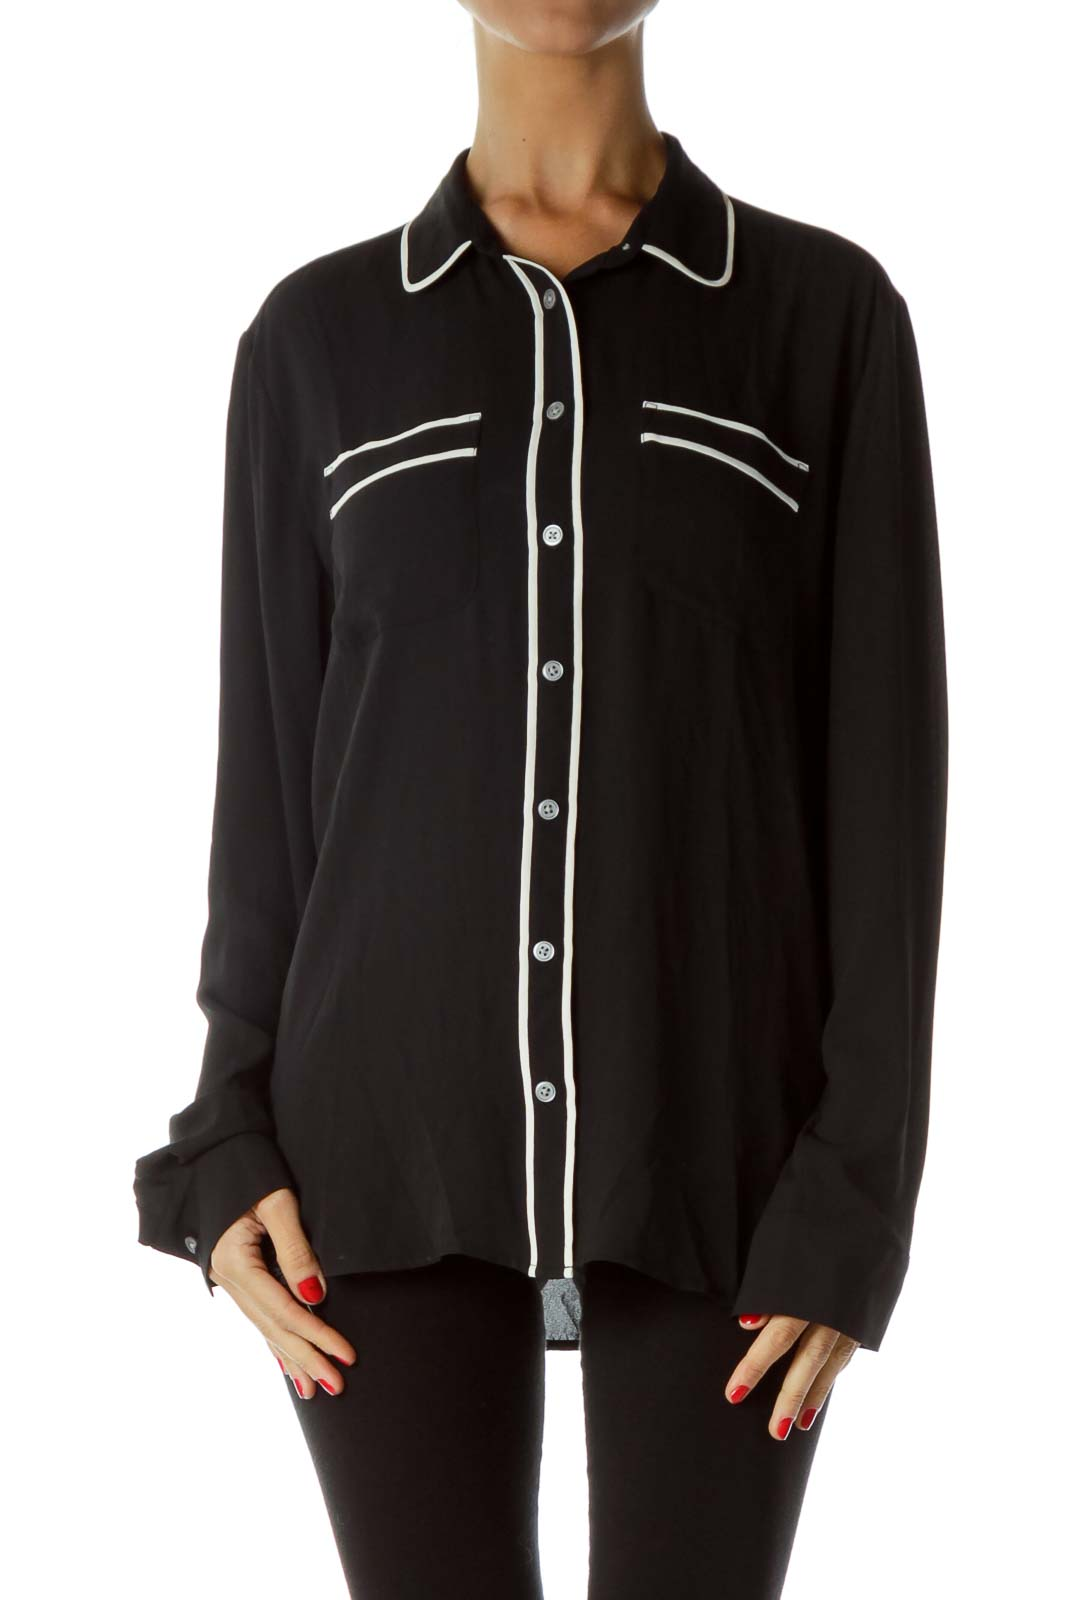 Black Button Down Shirt with White Piping